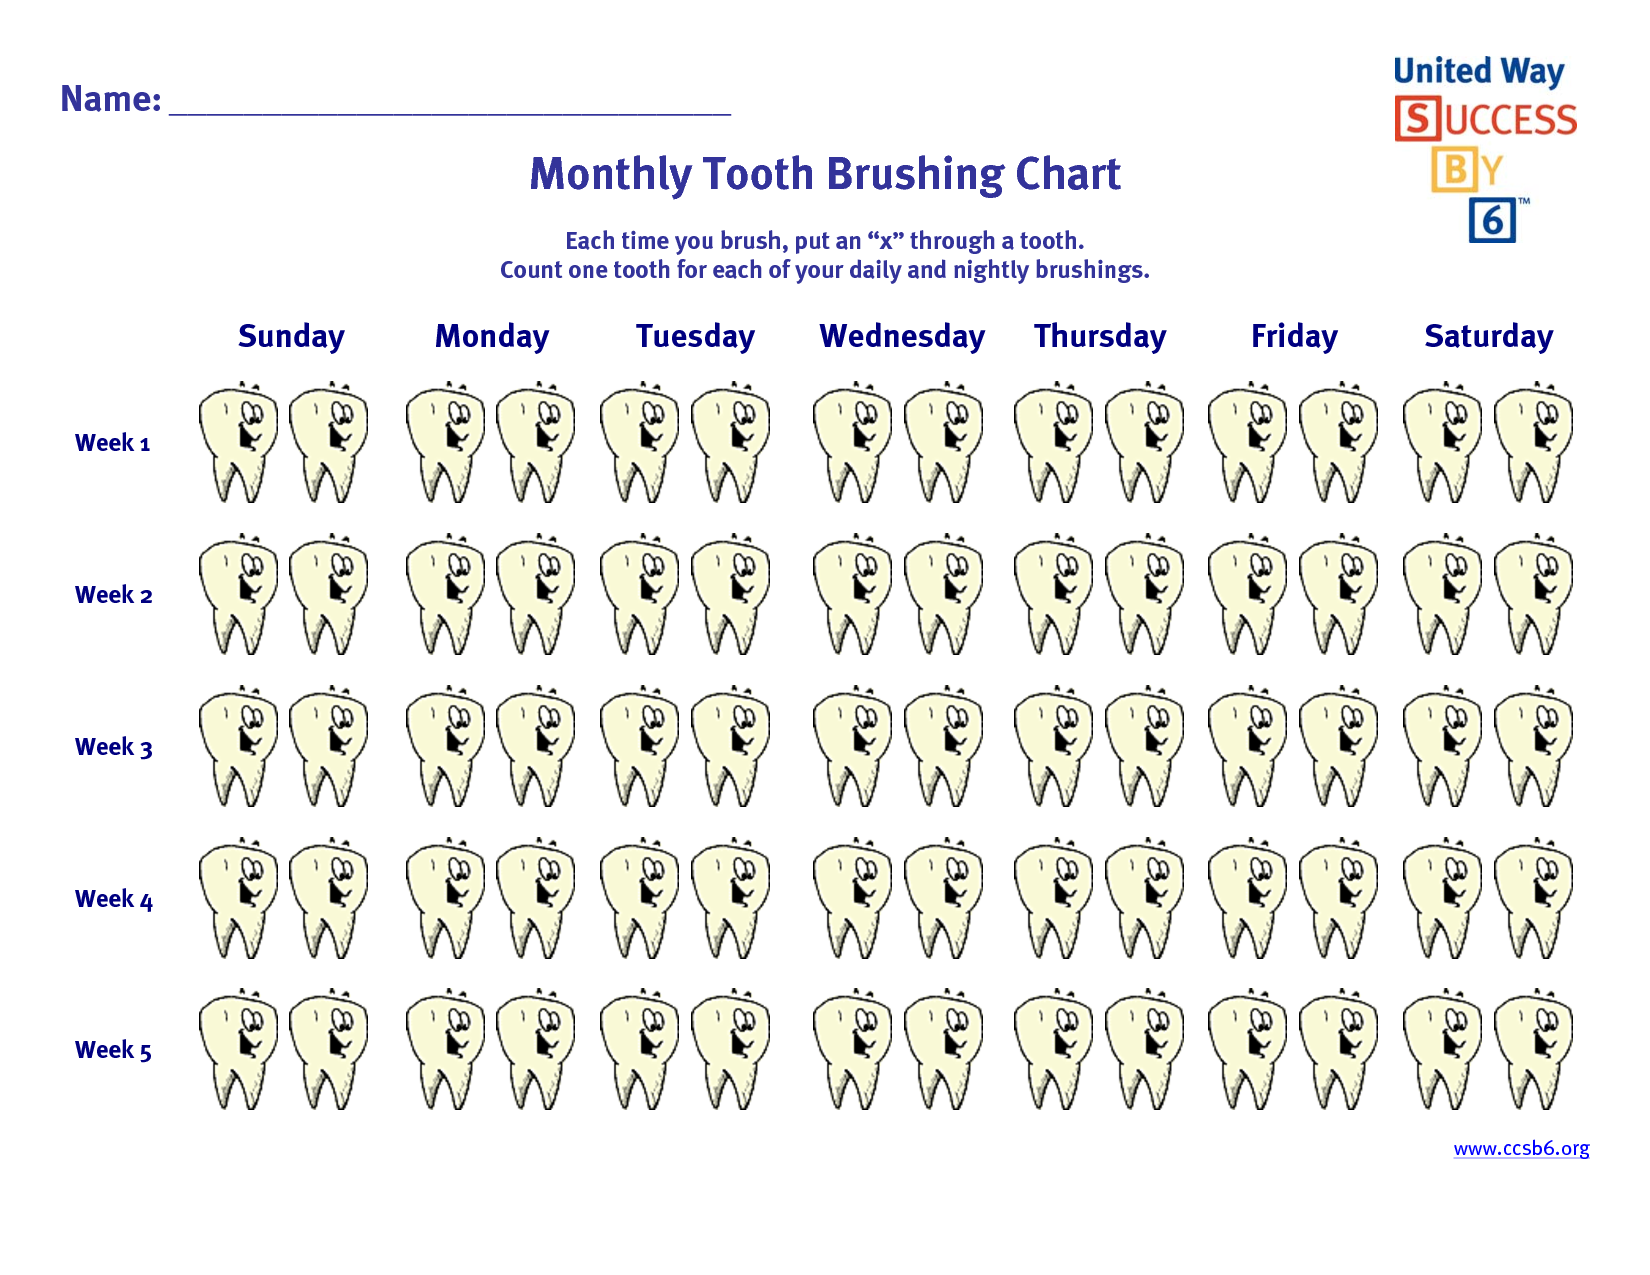 Monthly Tooth Brushing Chart